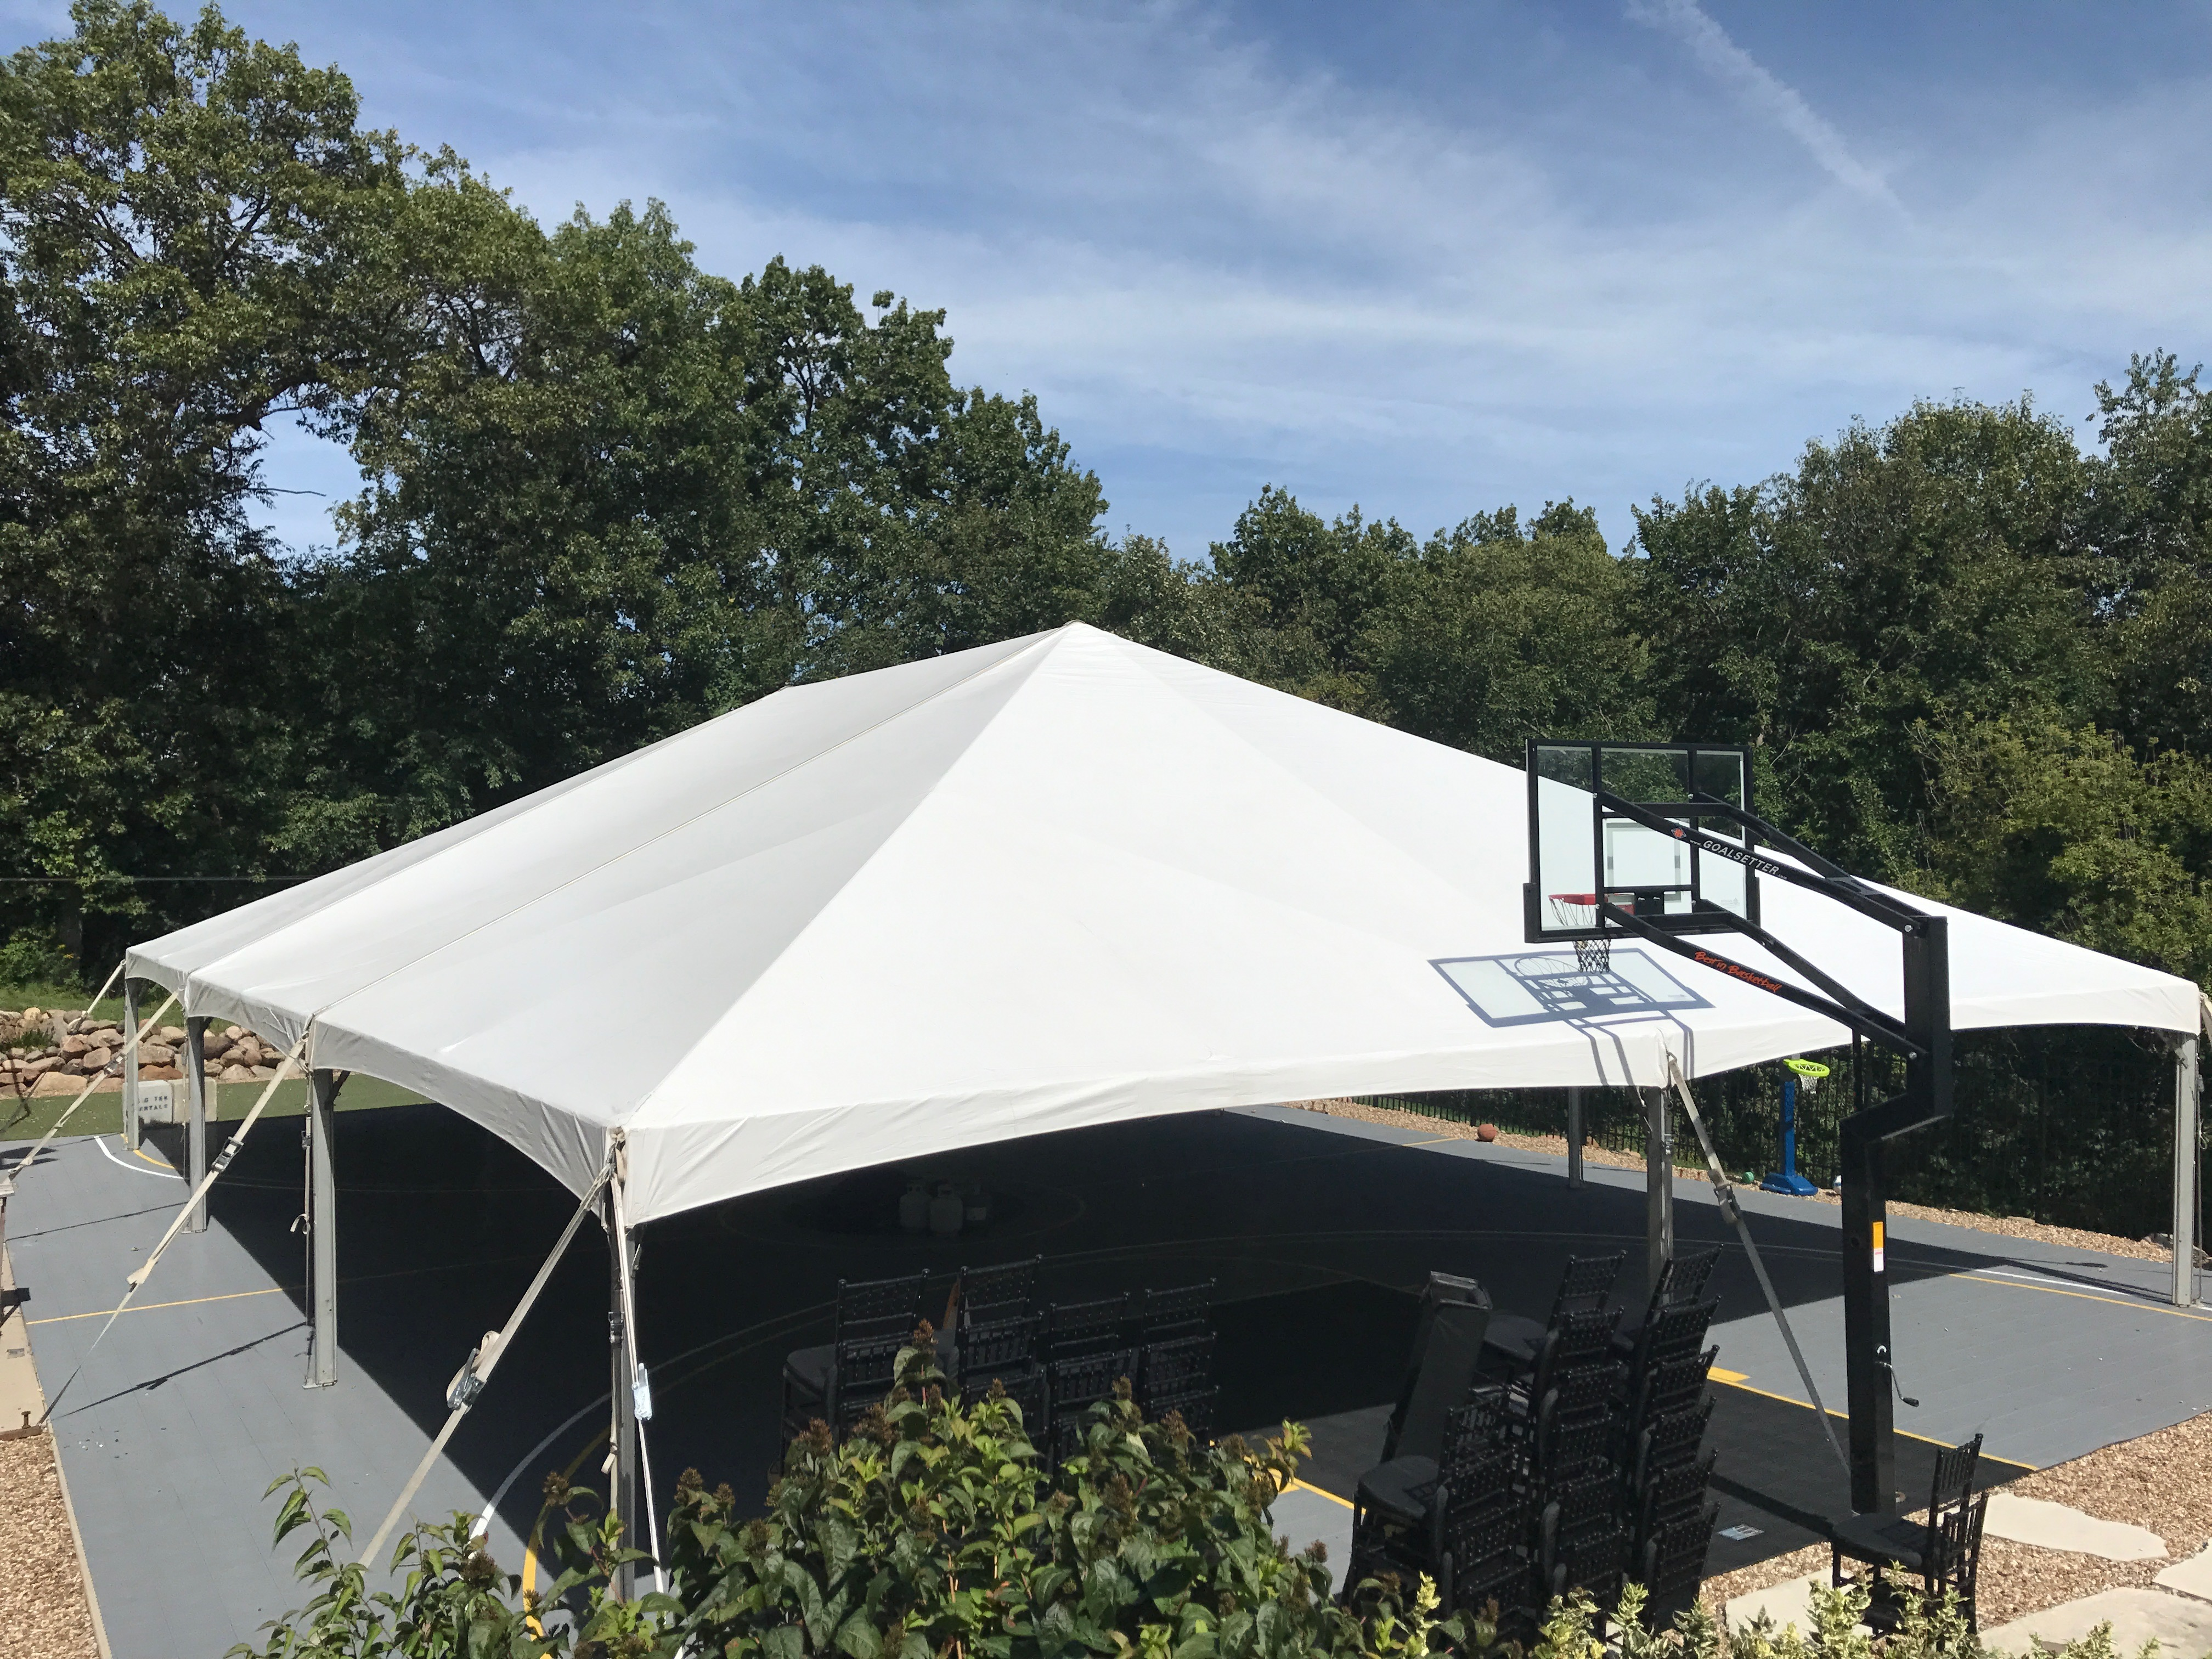 40' x 60' hybrid event tent setup on a Basketball court in Coralville, IA